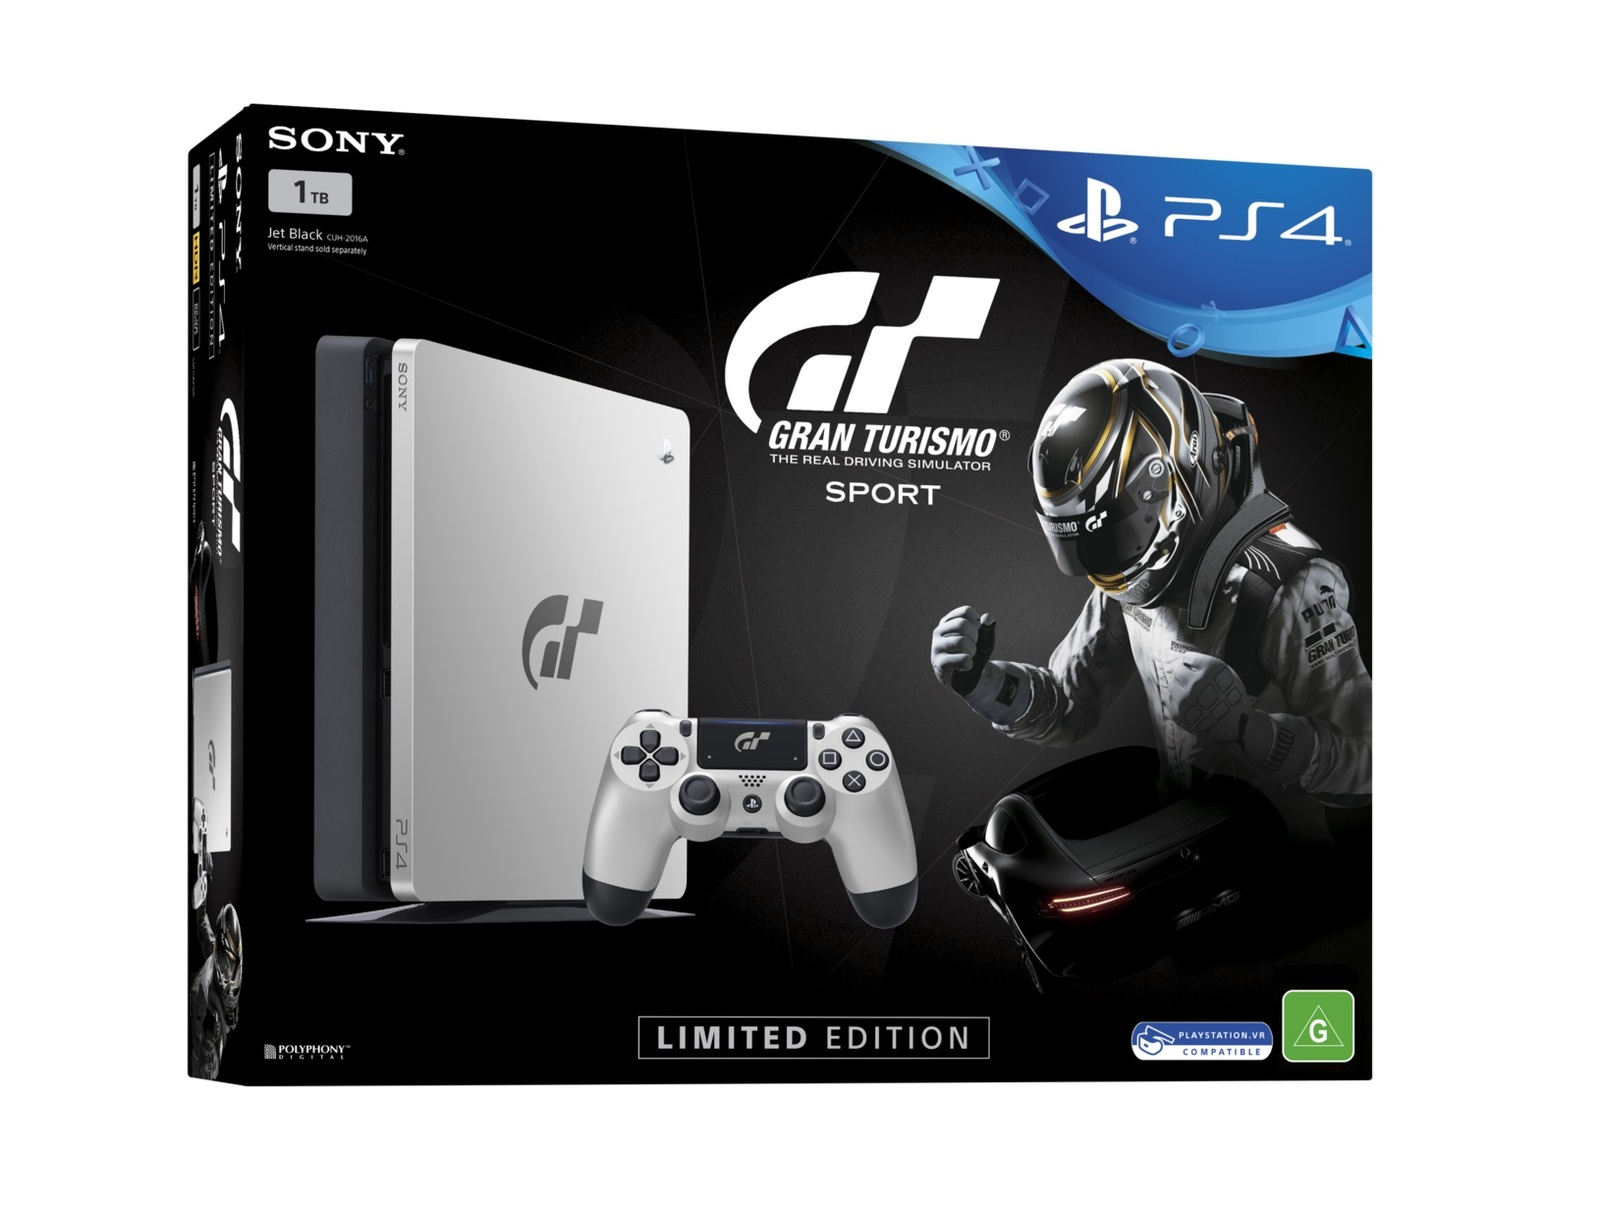 ps4 slim 1tb gran turismo sport limited edition bundle. Black Bedroom Furniture Sets. Home Design Ideas